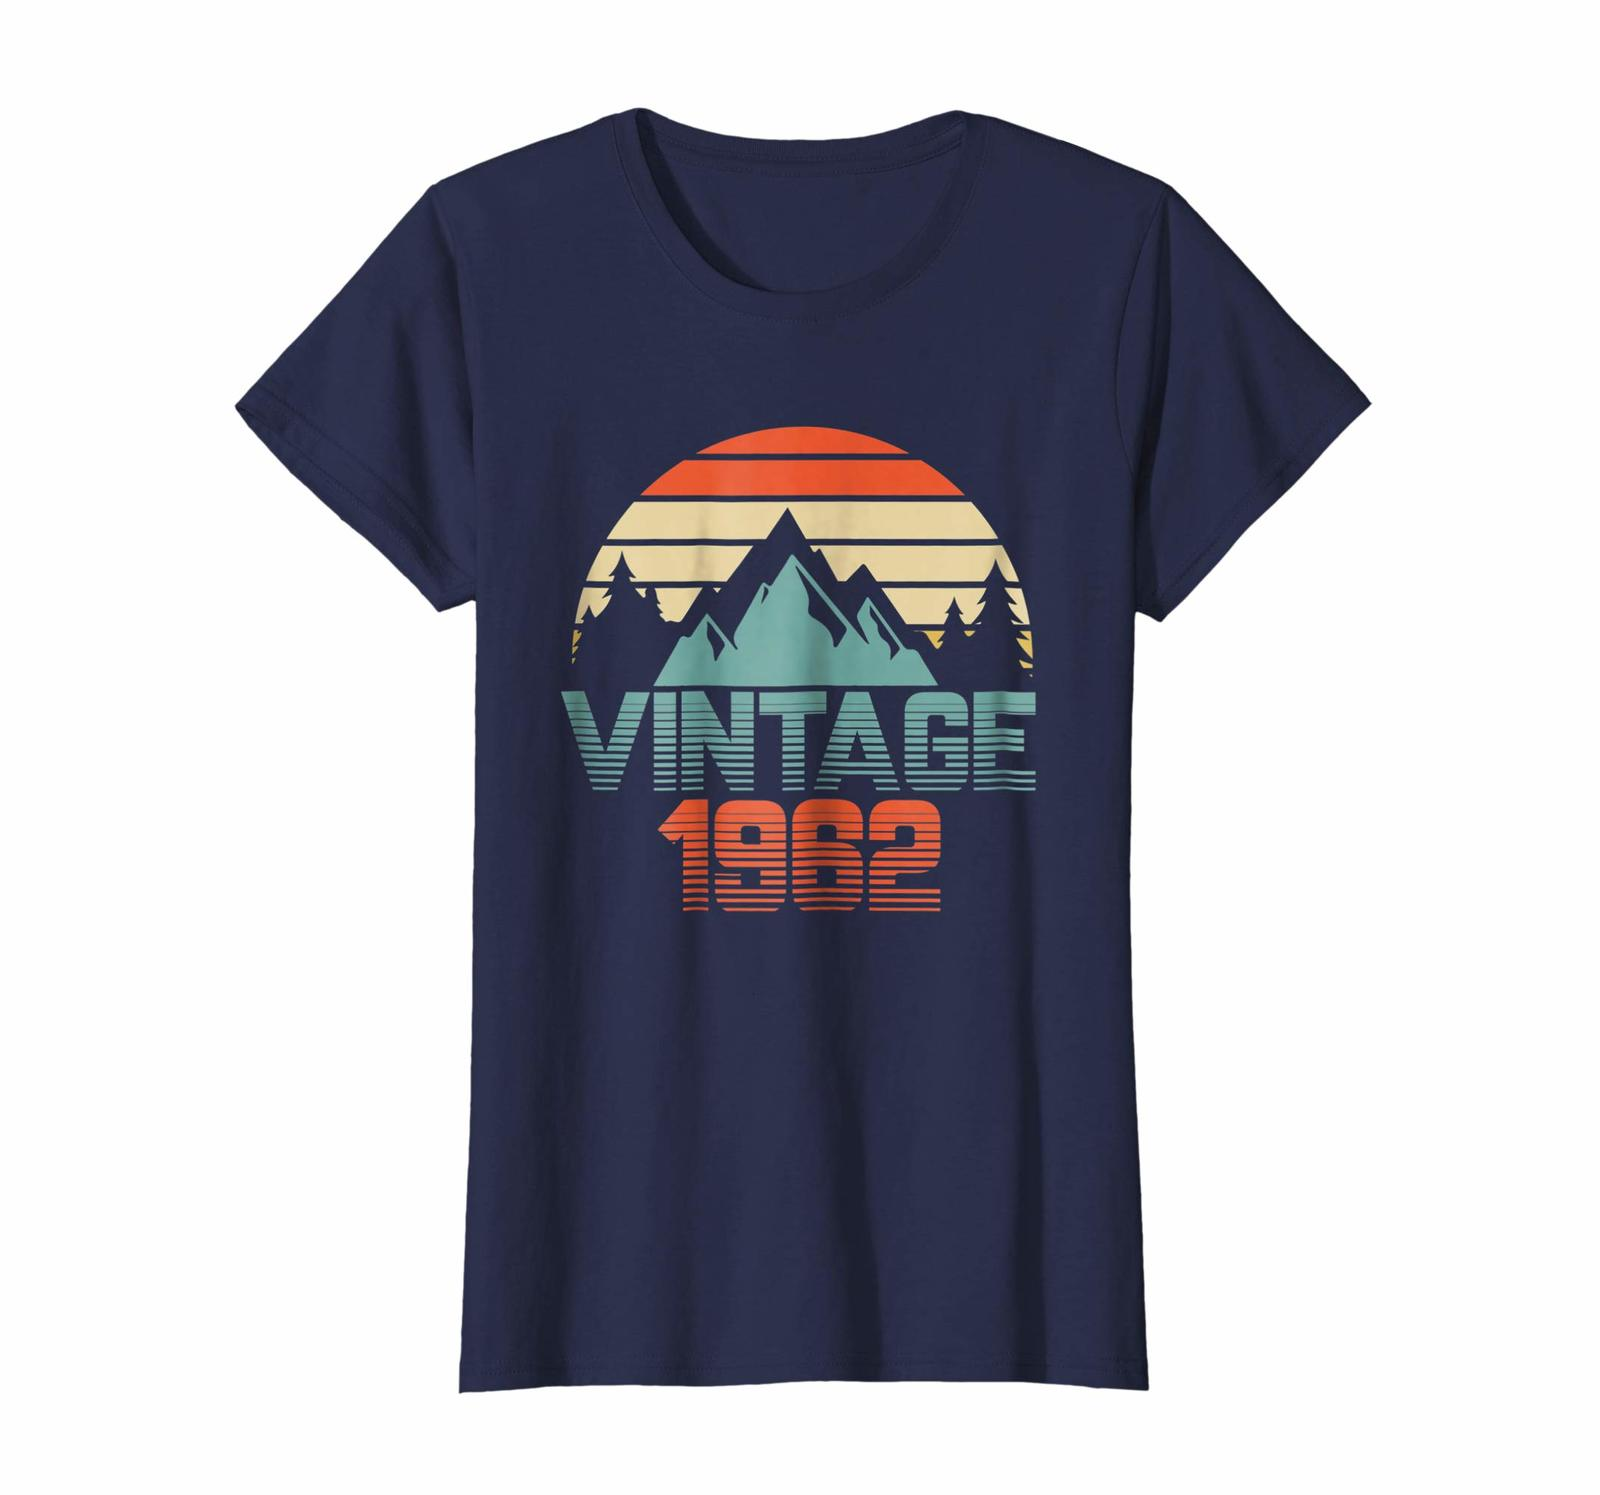 Brother Shirts - Vintage 1962 Shirt 56th Birthday Gifts 56 Years Old Awesomne Wo